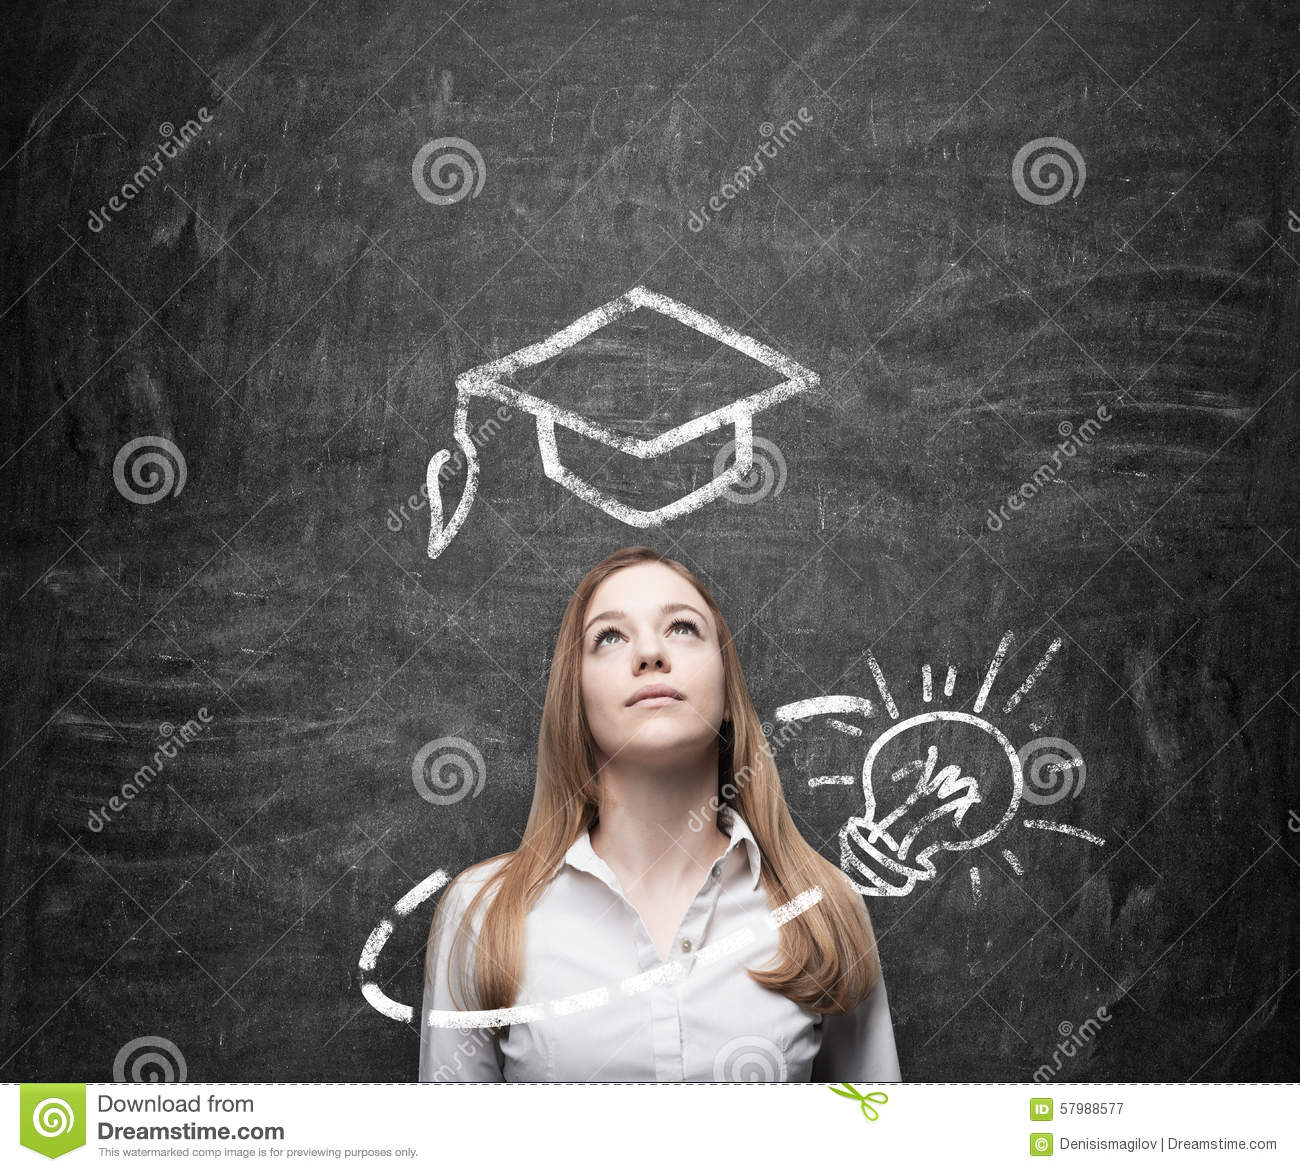 Download Beautiful Lady Is Thinking About Education. A Graduation Hat And A Light Bulb Are Drawn On The Chalkboard Above The Lady. Stock Image - Image of beauty, businesswoman: 57988577